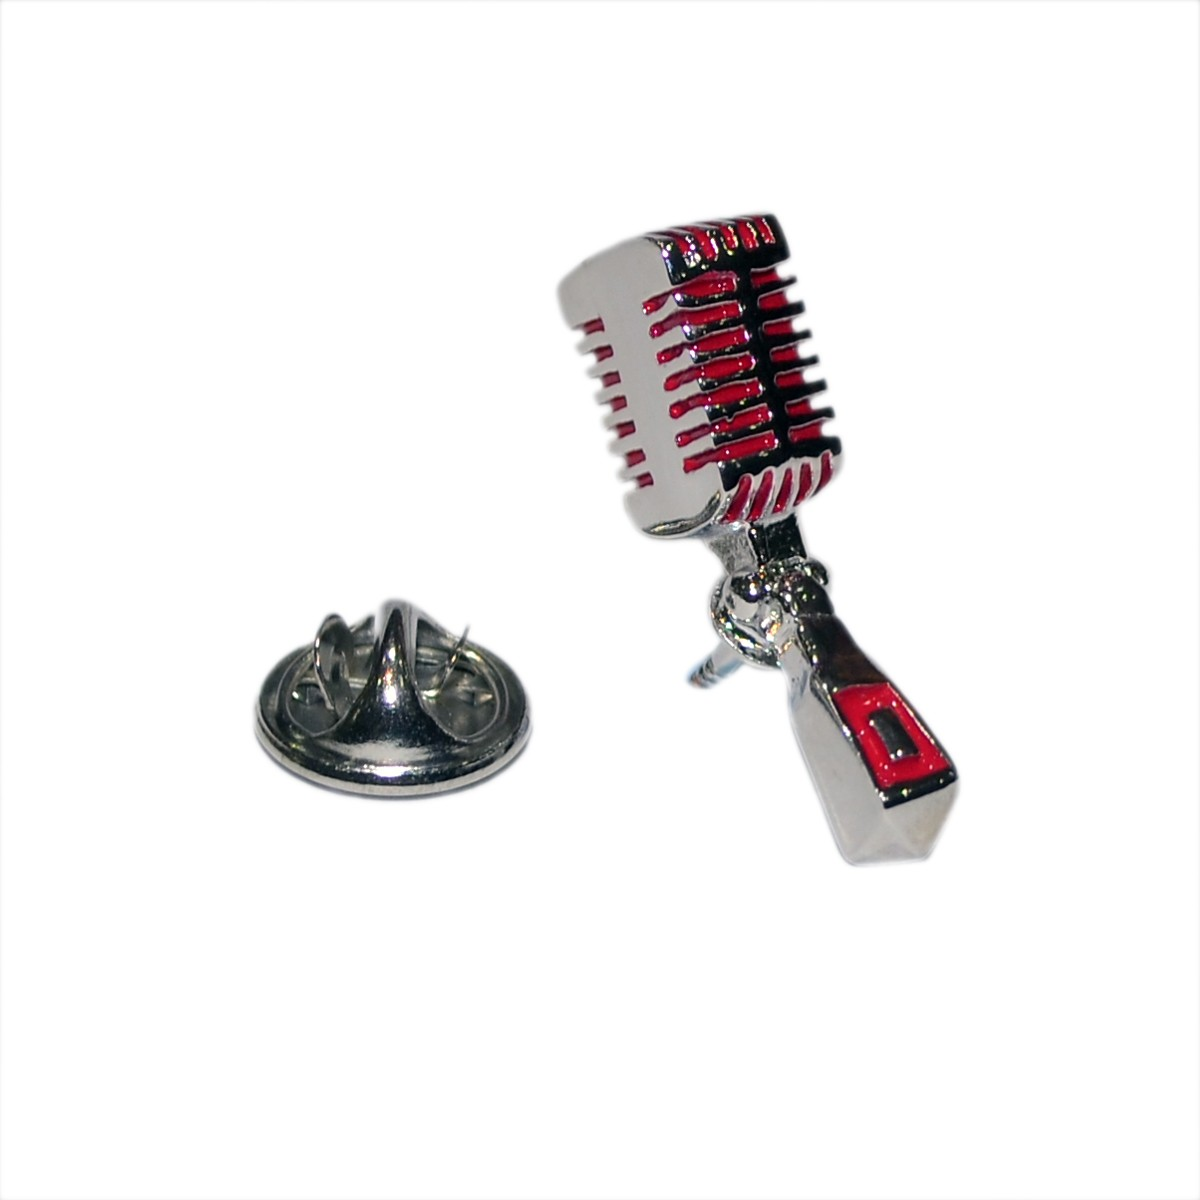 Pin Badge Retro Microphone Red & Silver Sparkle Gift